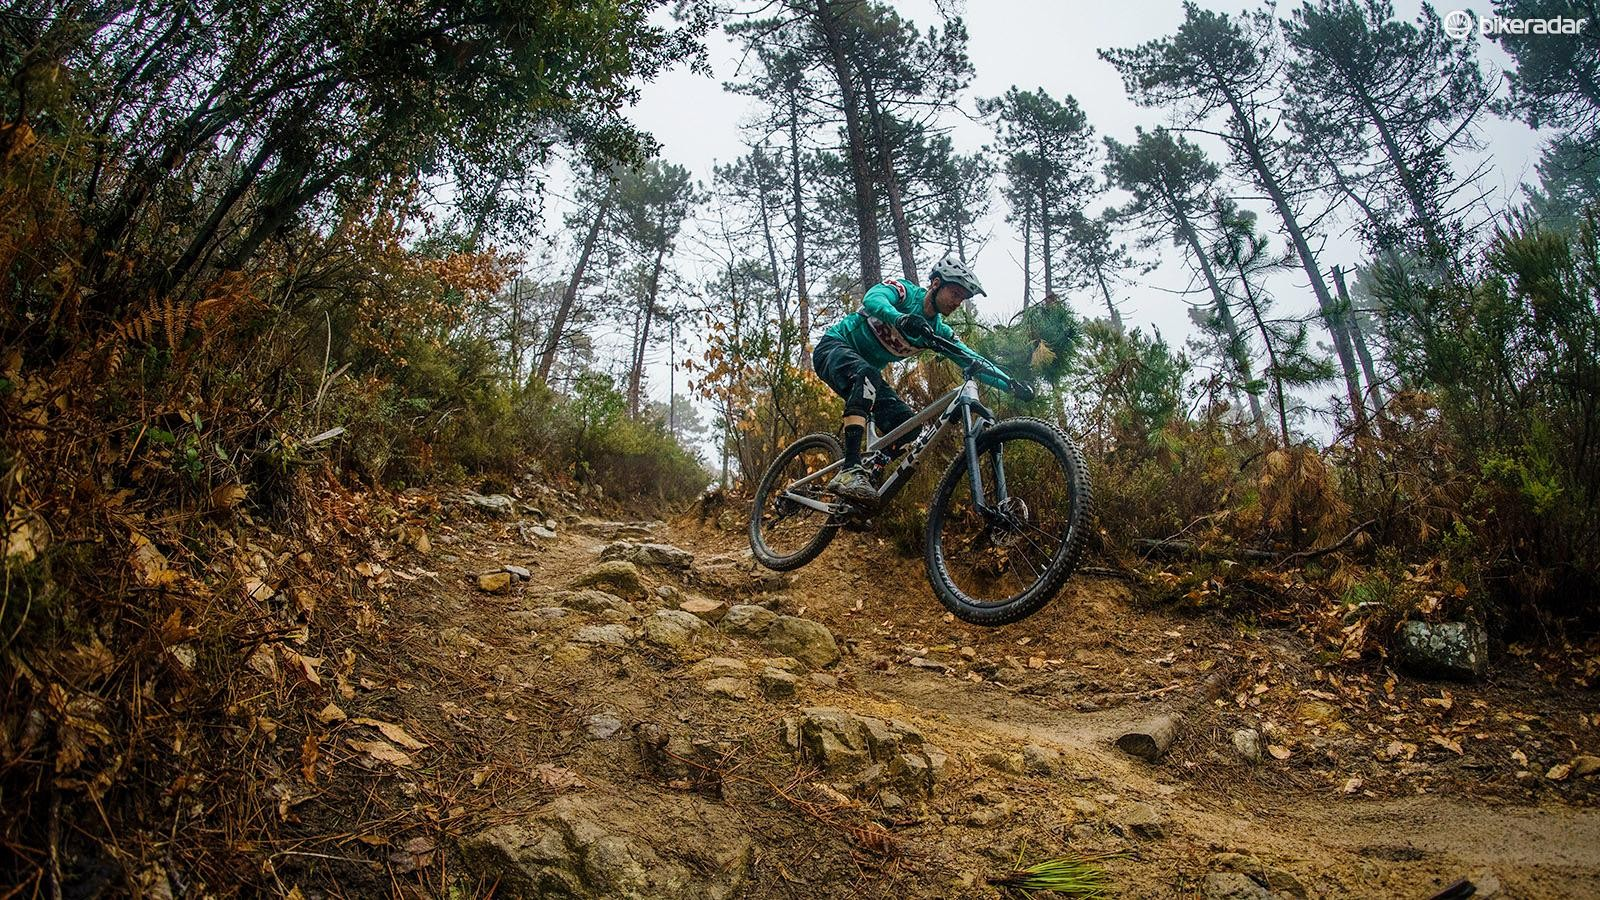 Despite cross-country roots, this is a bike that can handle air time